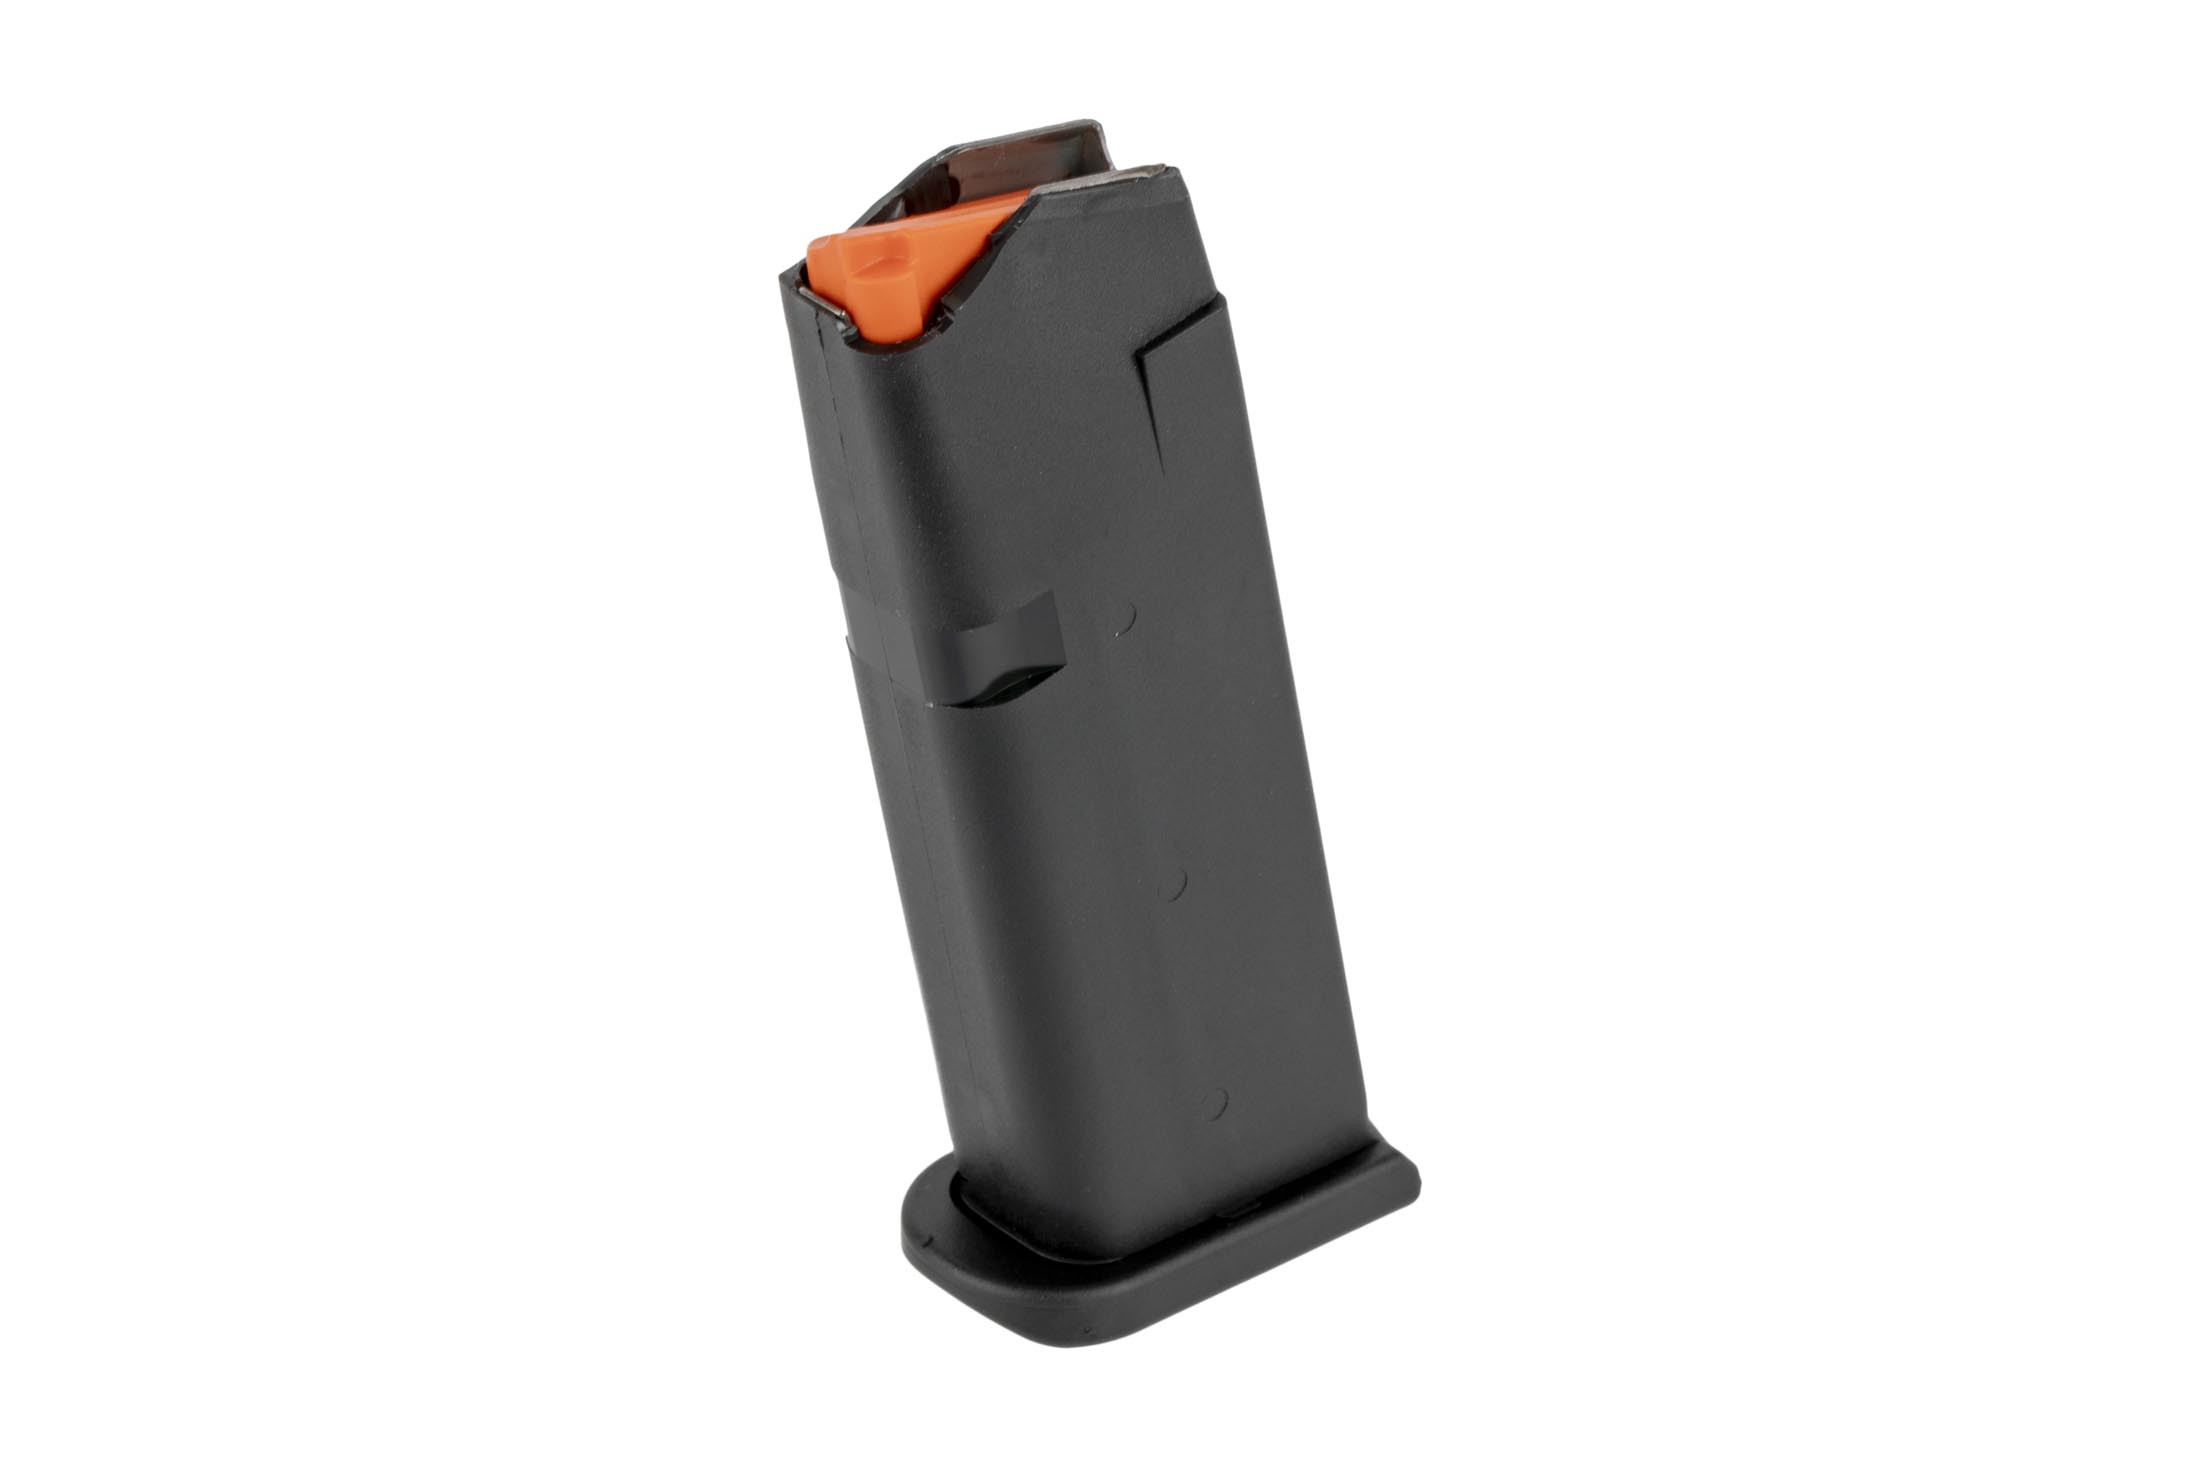 Glock's G43x and G48 magazines are steel-reinforced OEM magazines for your handguns that hold 10-rounds of 9mm ammo.